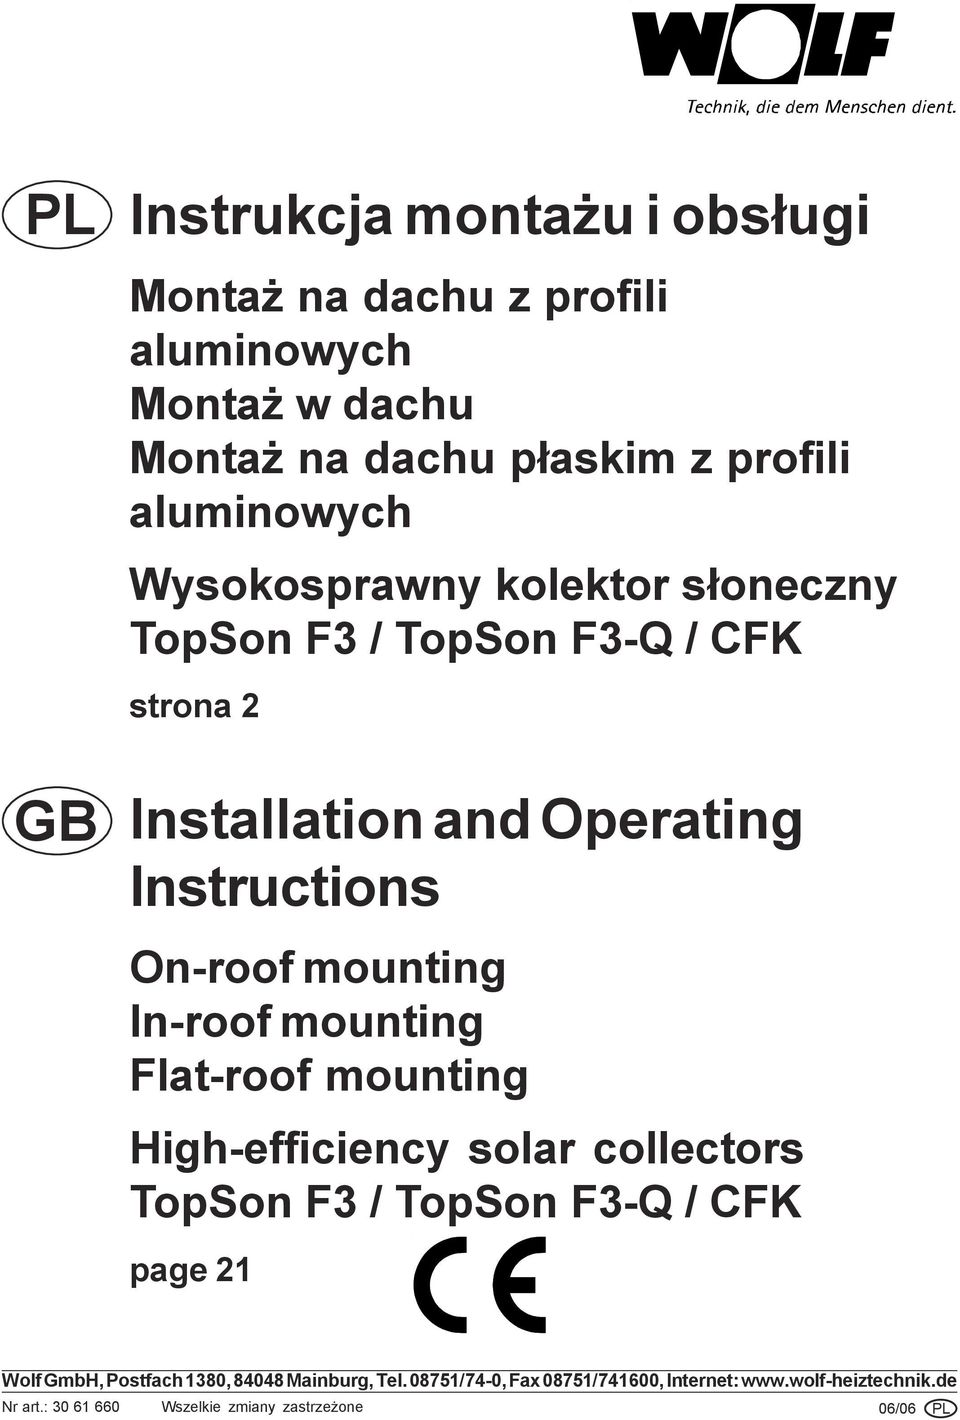 In-roof mounting Flat-roof mounting High-efficiency solar collectors TopSon F3 / TopSon F3-Q / CFK page 21 Wolf GmbH, Postfach 1380,